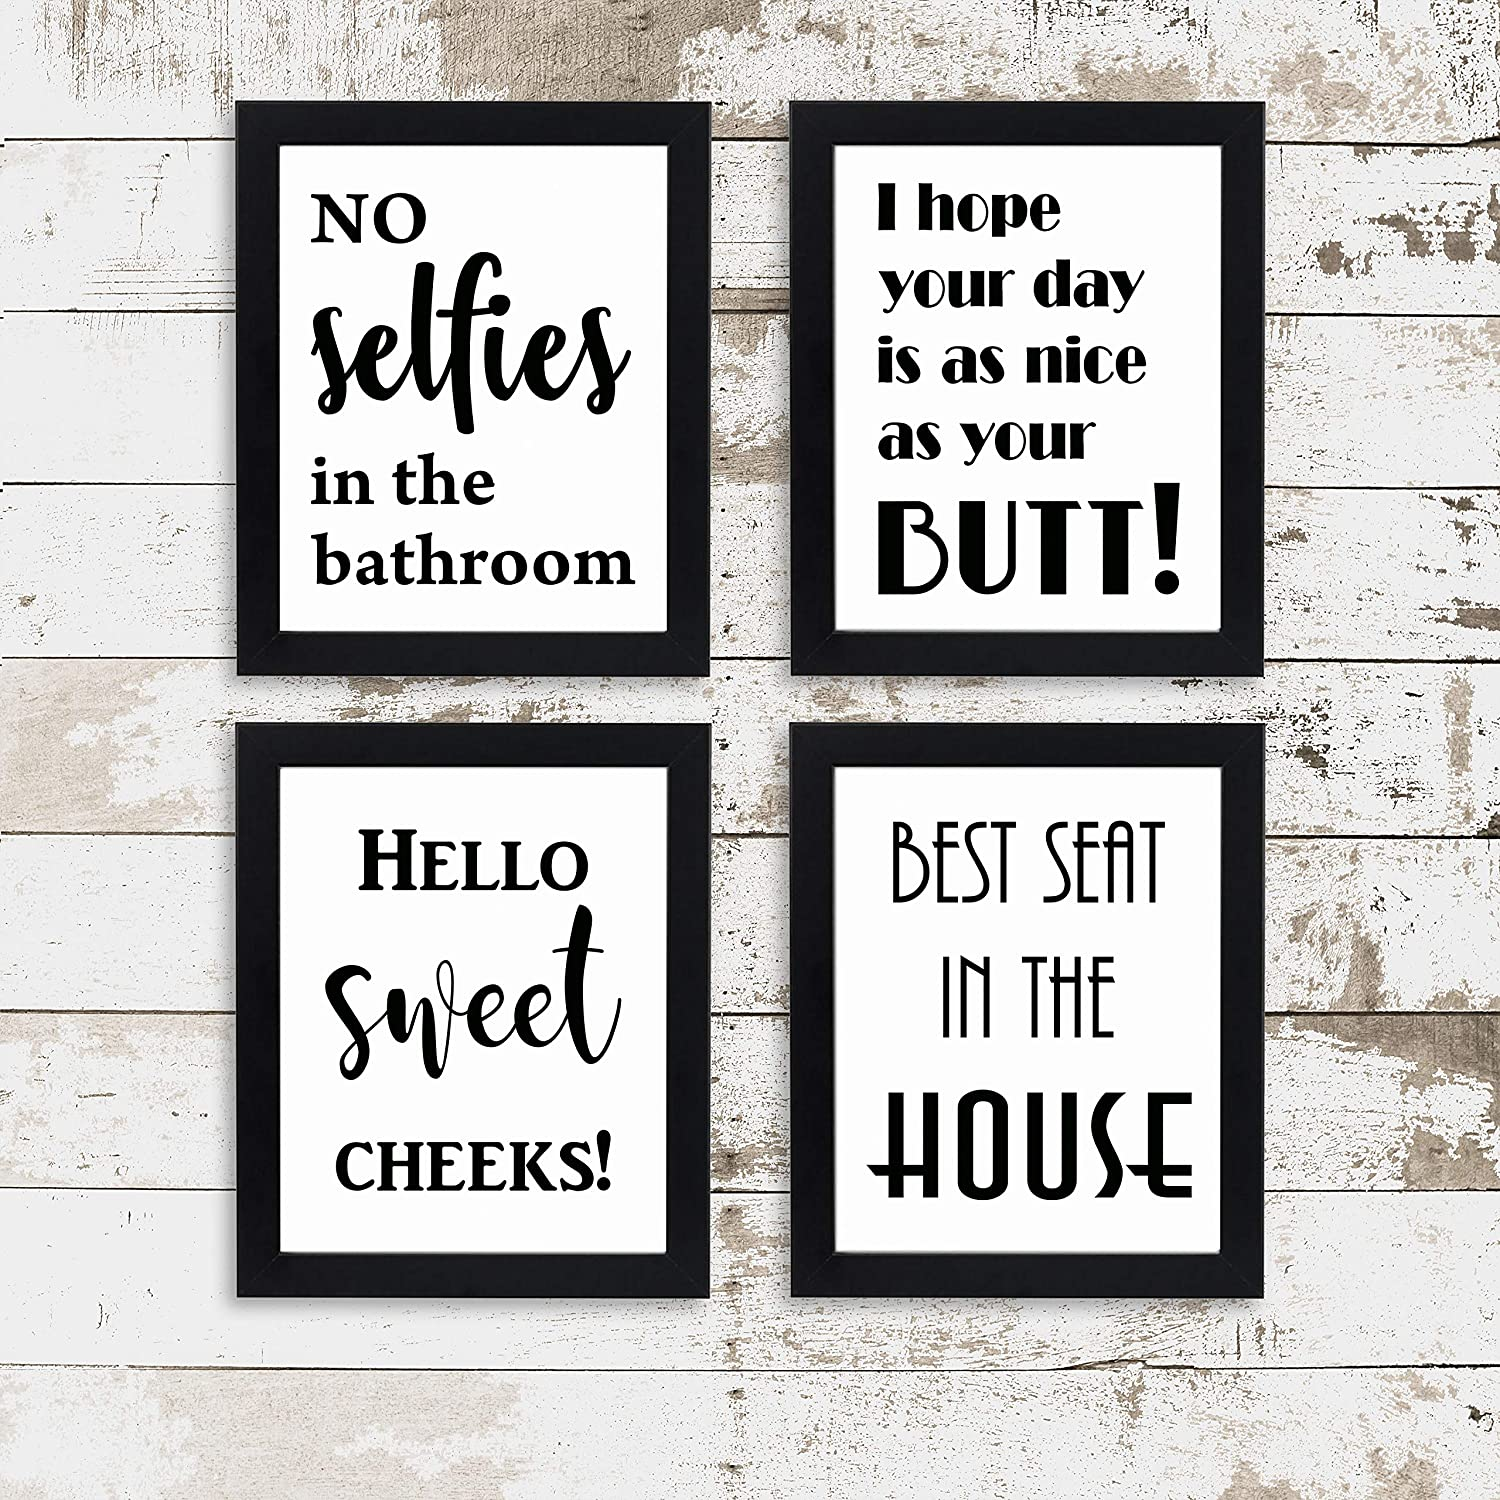 Bathroom Wall Decor Unframed Prints | No Selfies in The Bathroom Wall Decor | I Hope Your Day is As Nice As Your Butt | Hello Sweet Cheeks | Best Seat in The House Bathroom Wall Décor